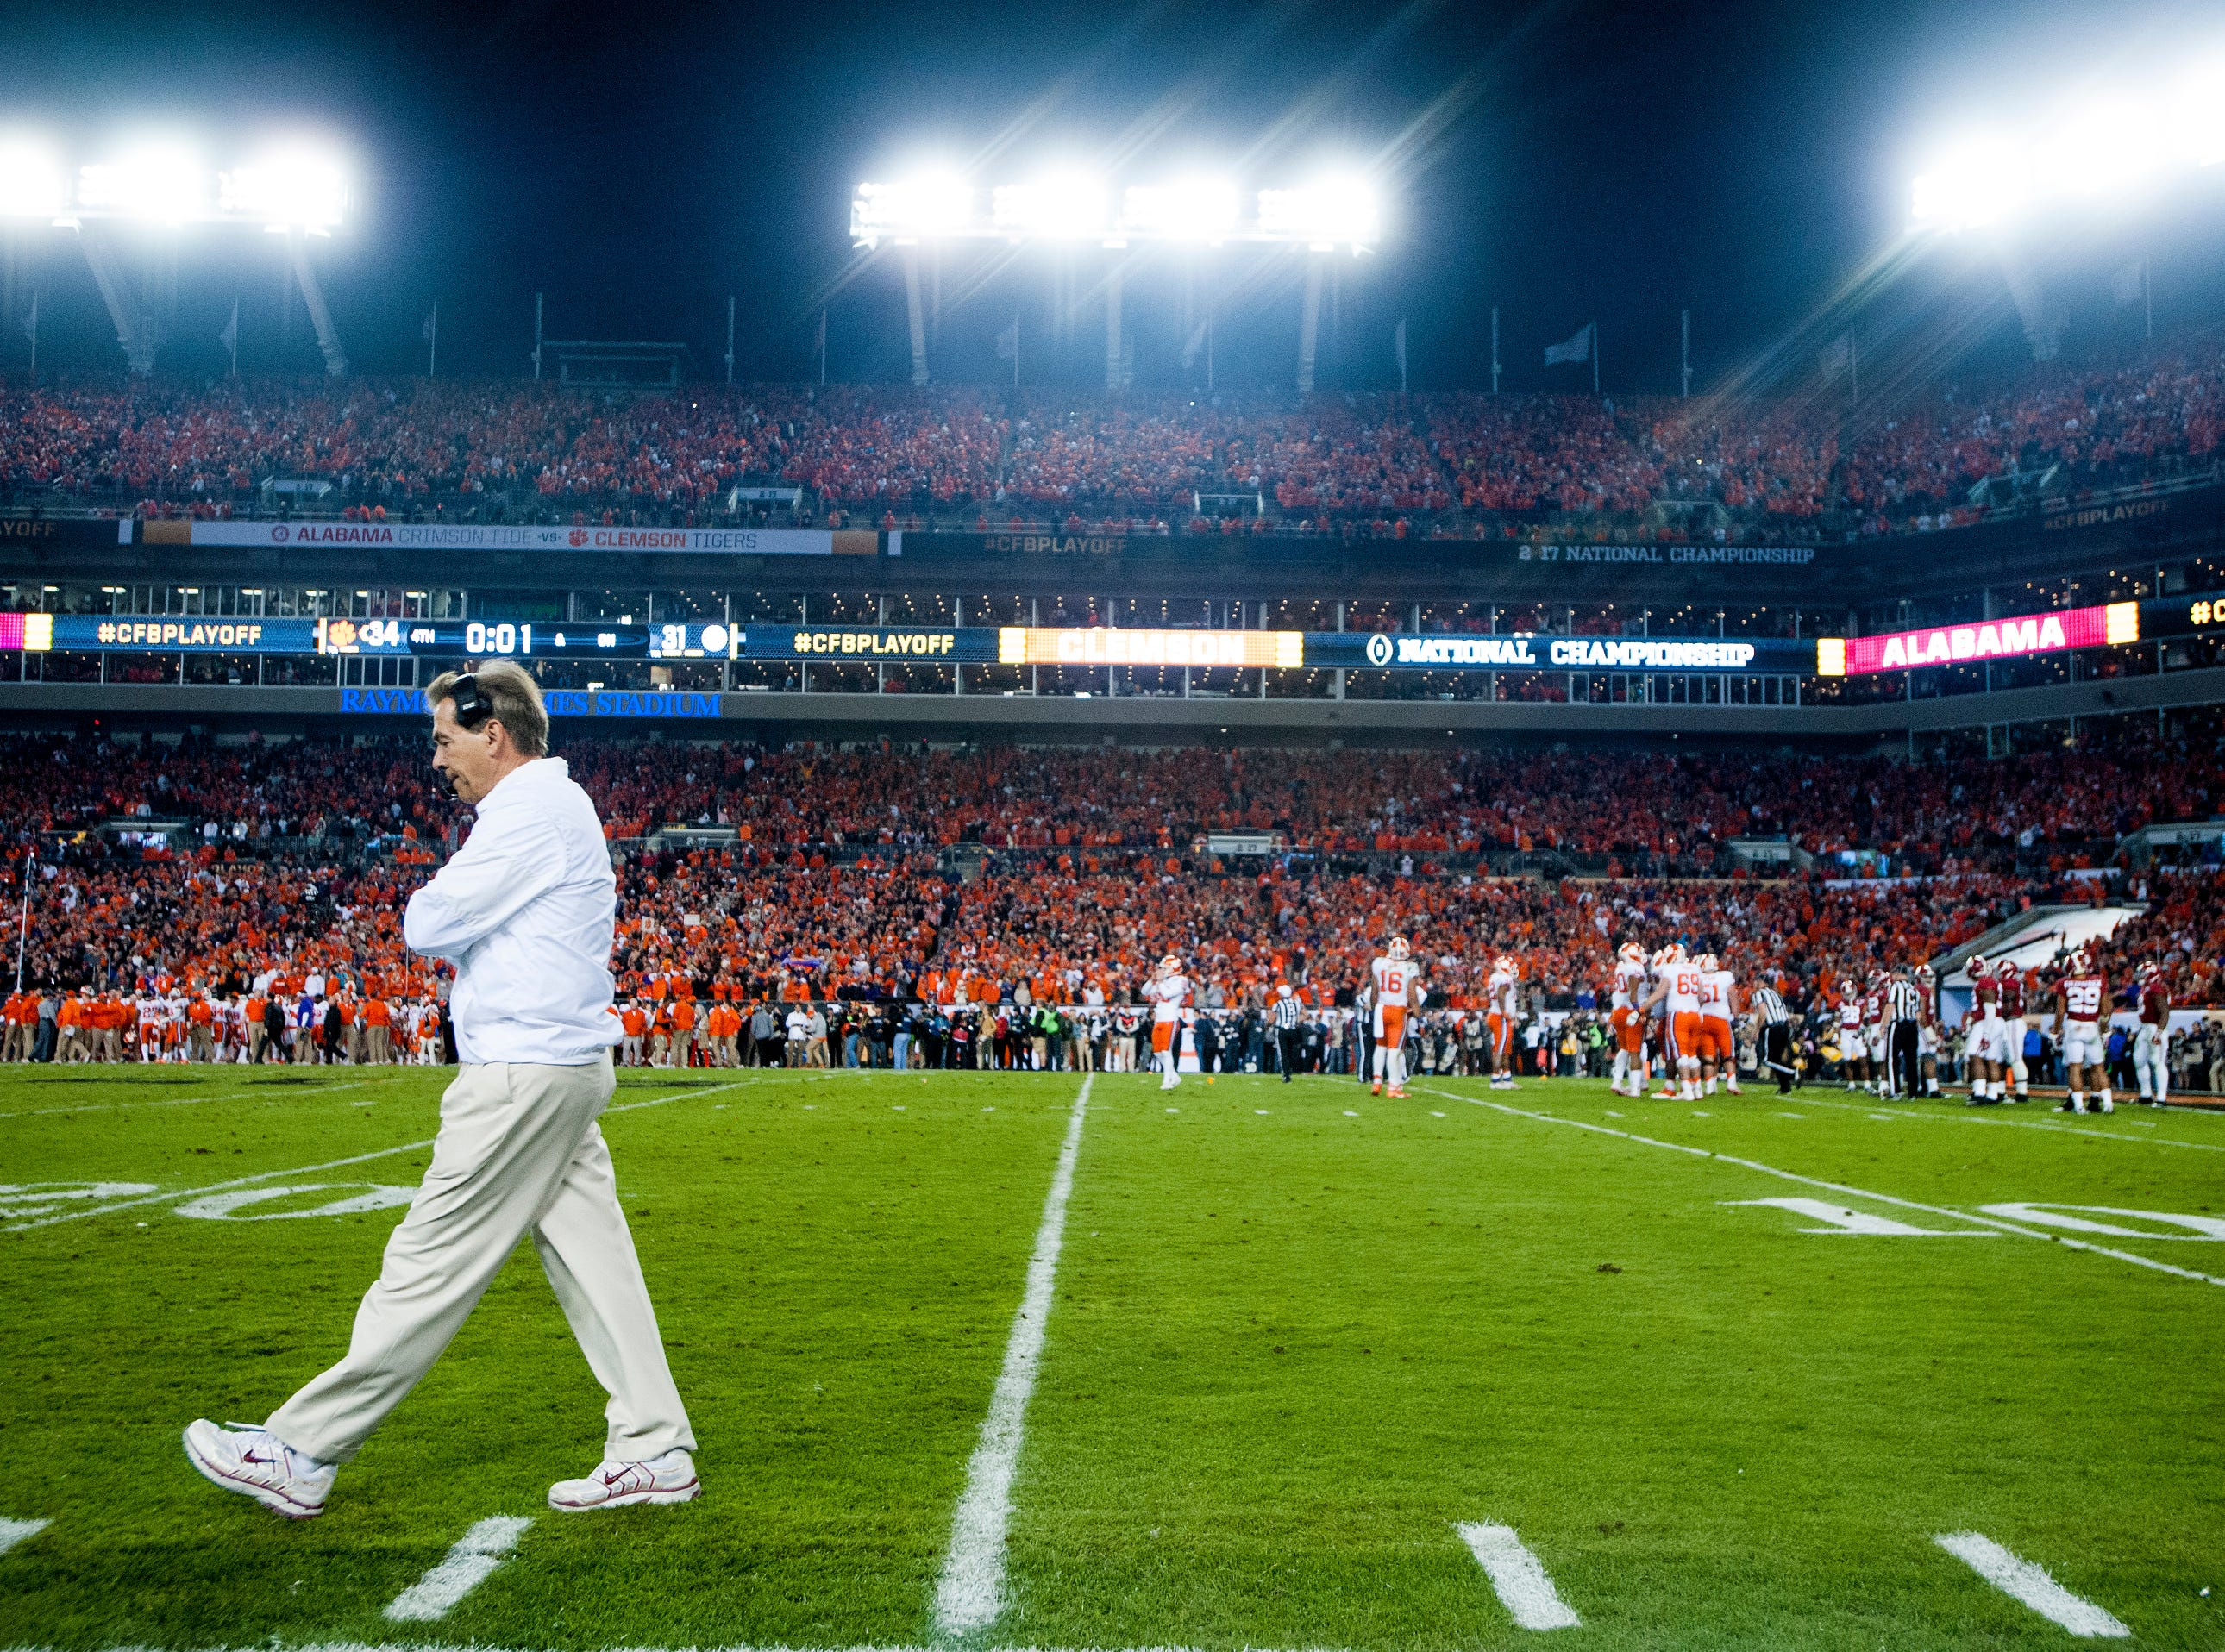 Alabama head coach Nick Saban paces late against Clemson in the College Football Playoff National Championship Game at Raymond James Stadium in Tampa, Fla. on Monday January 9, 2017.